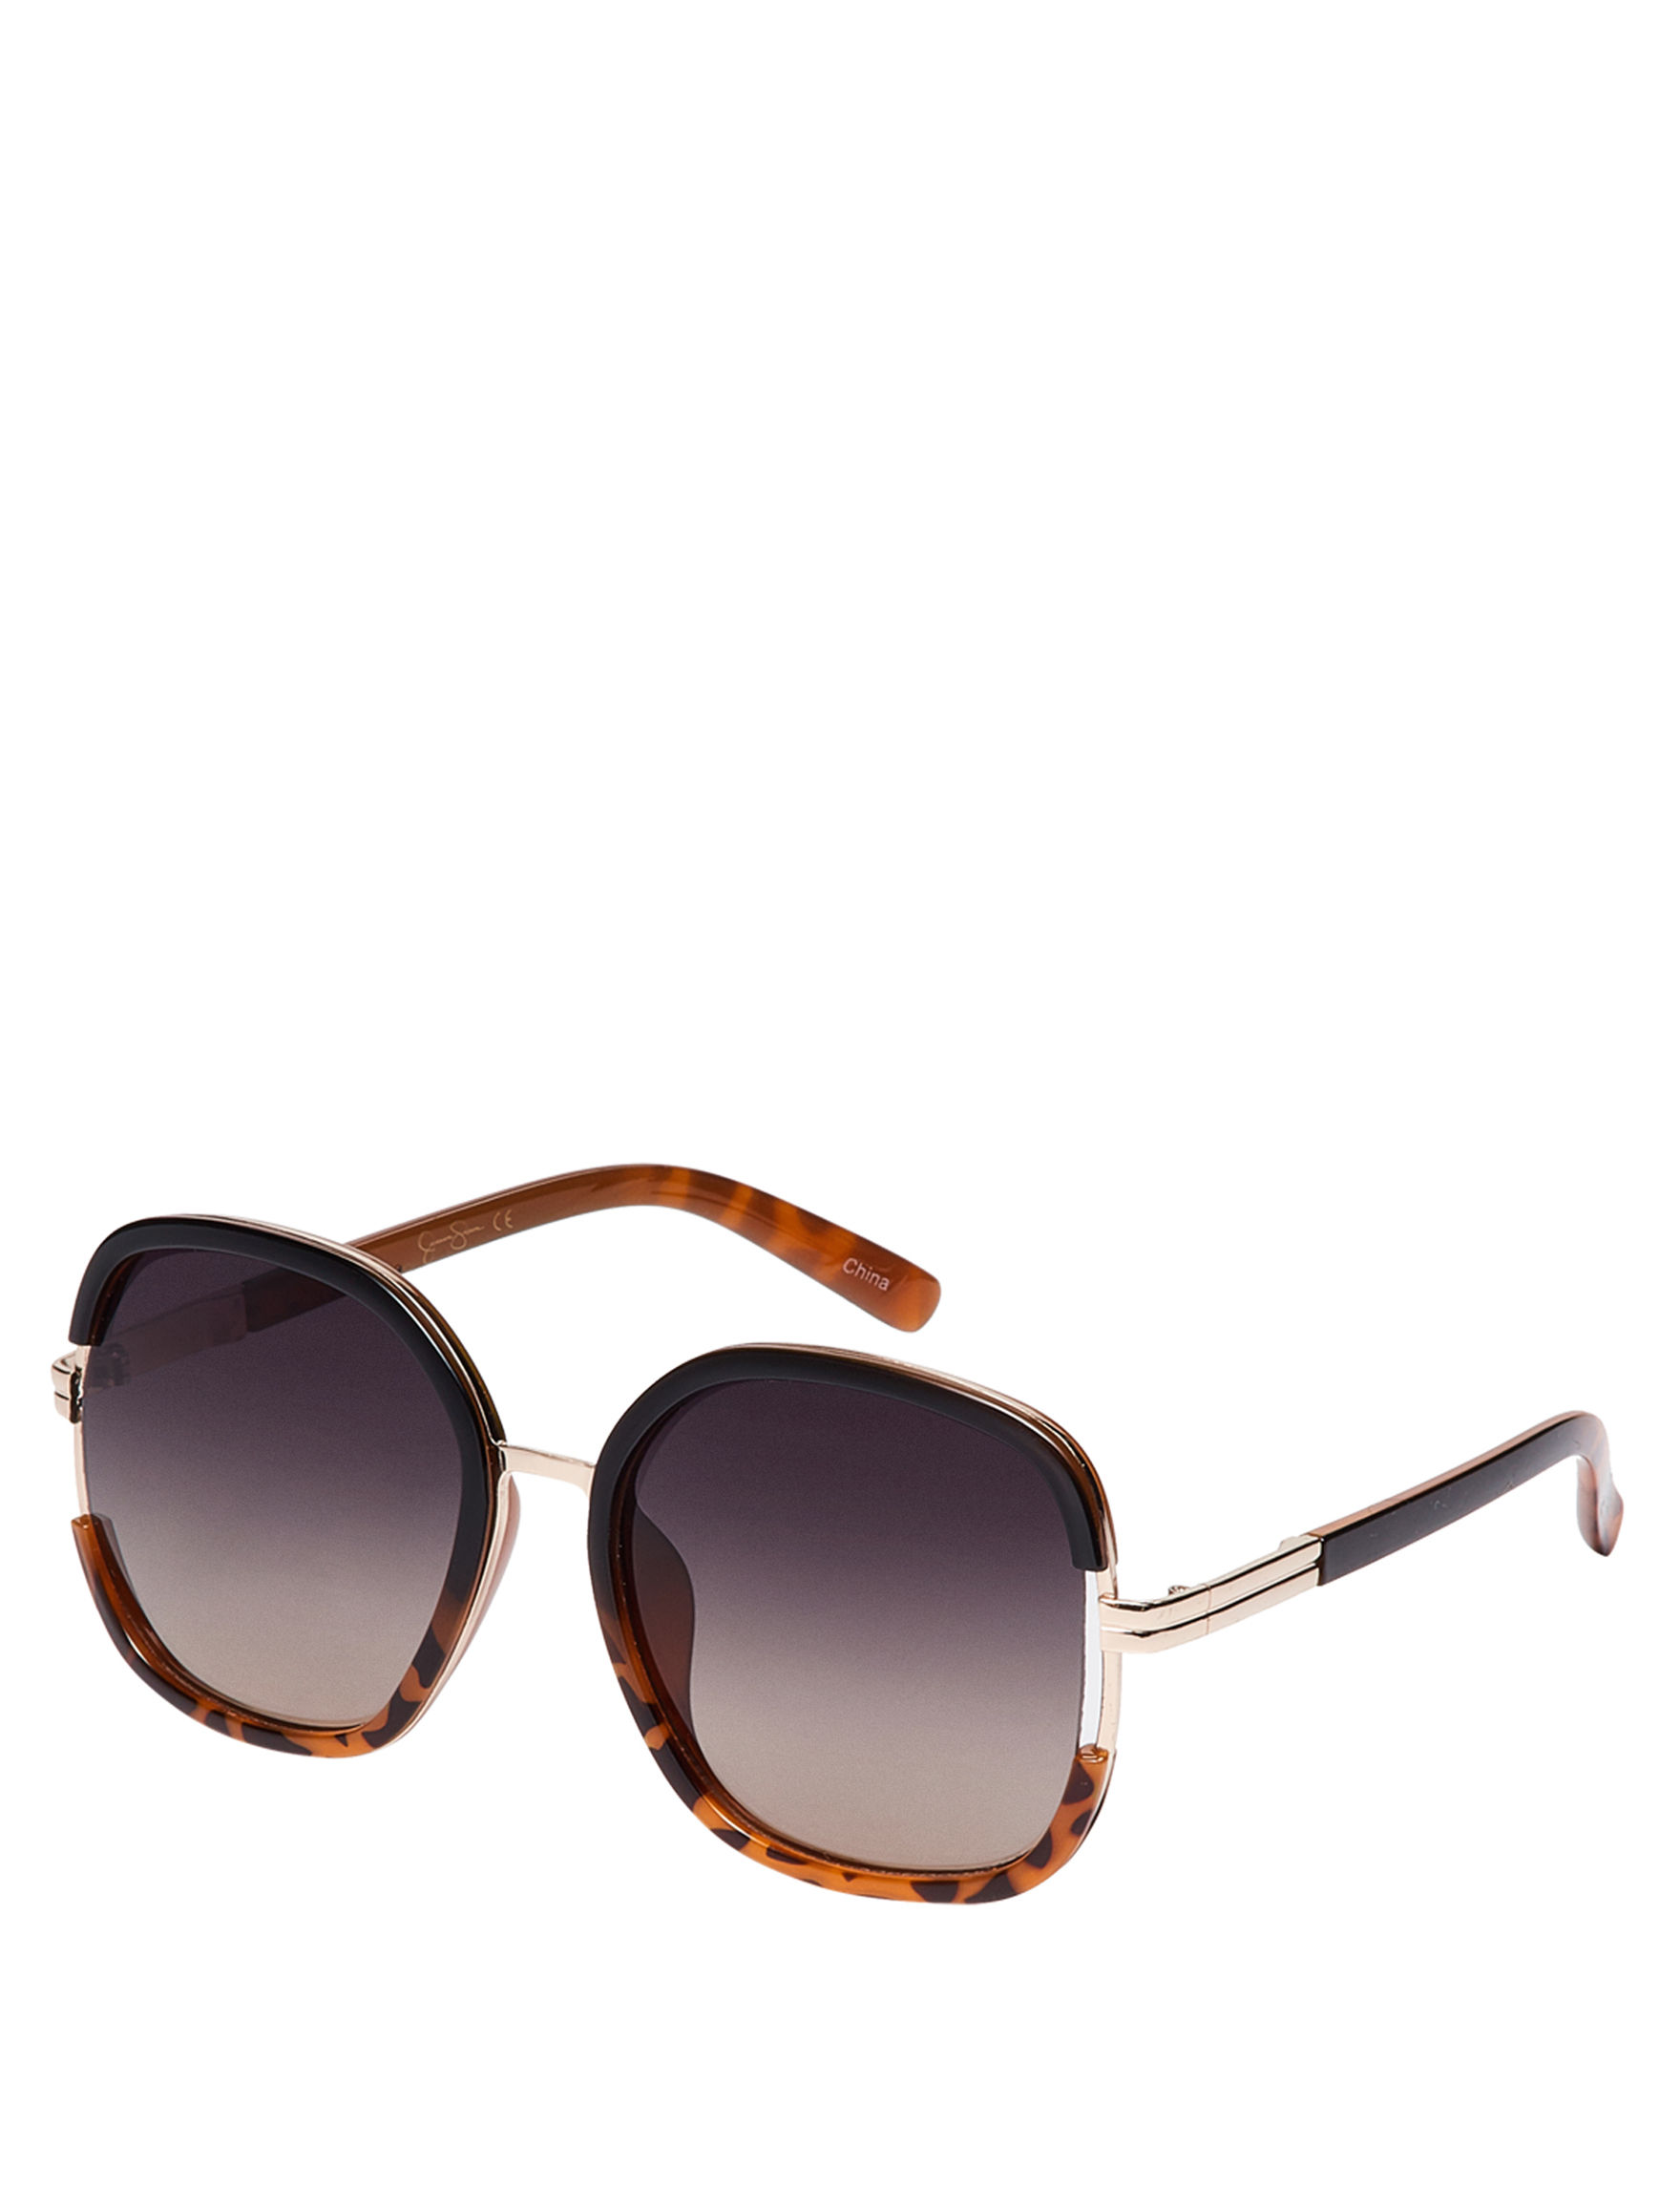 6efad03e45293 Jessica Simpson Oversized Square Sunglasses